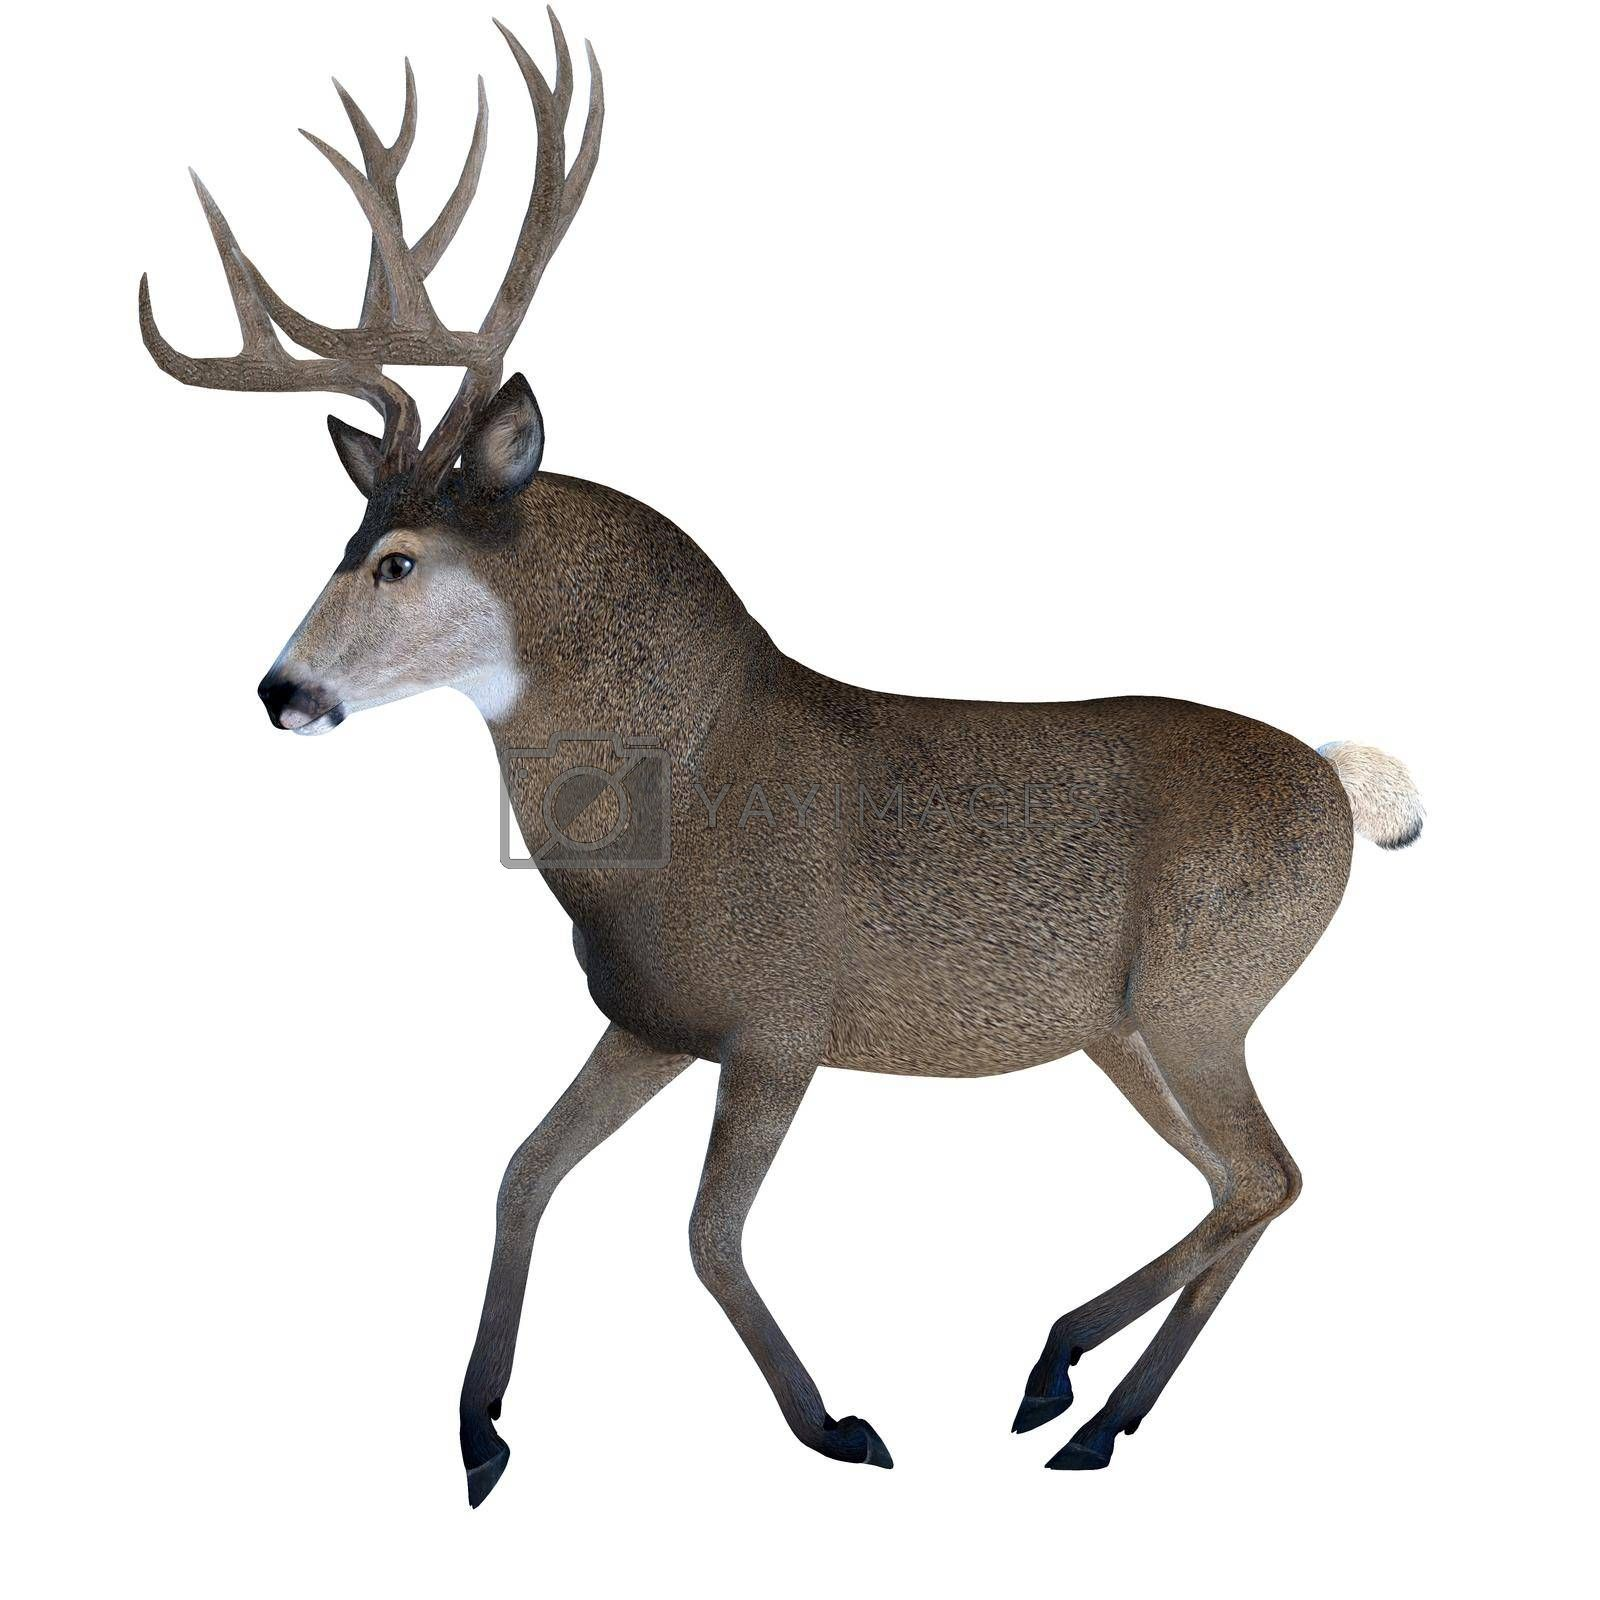 Large ears and spiked antlers are a feature of the Mule deer which lives in the Western North America.